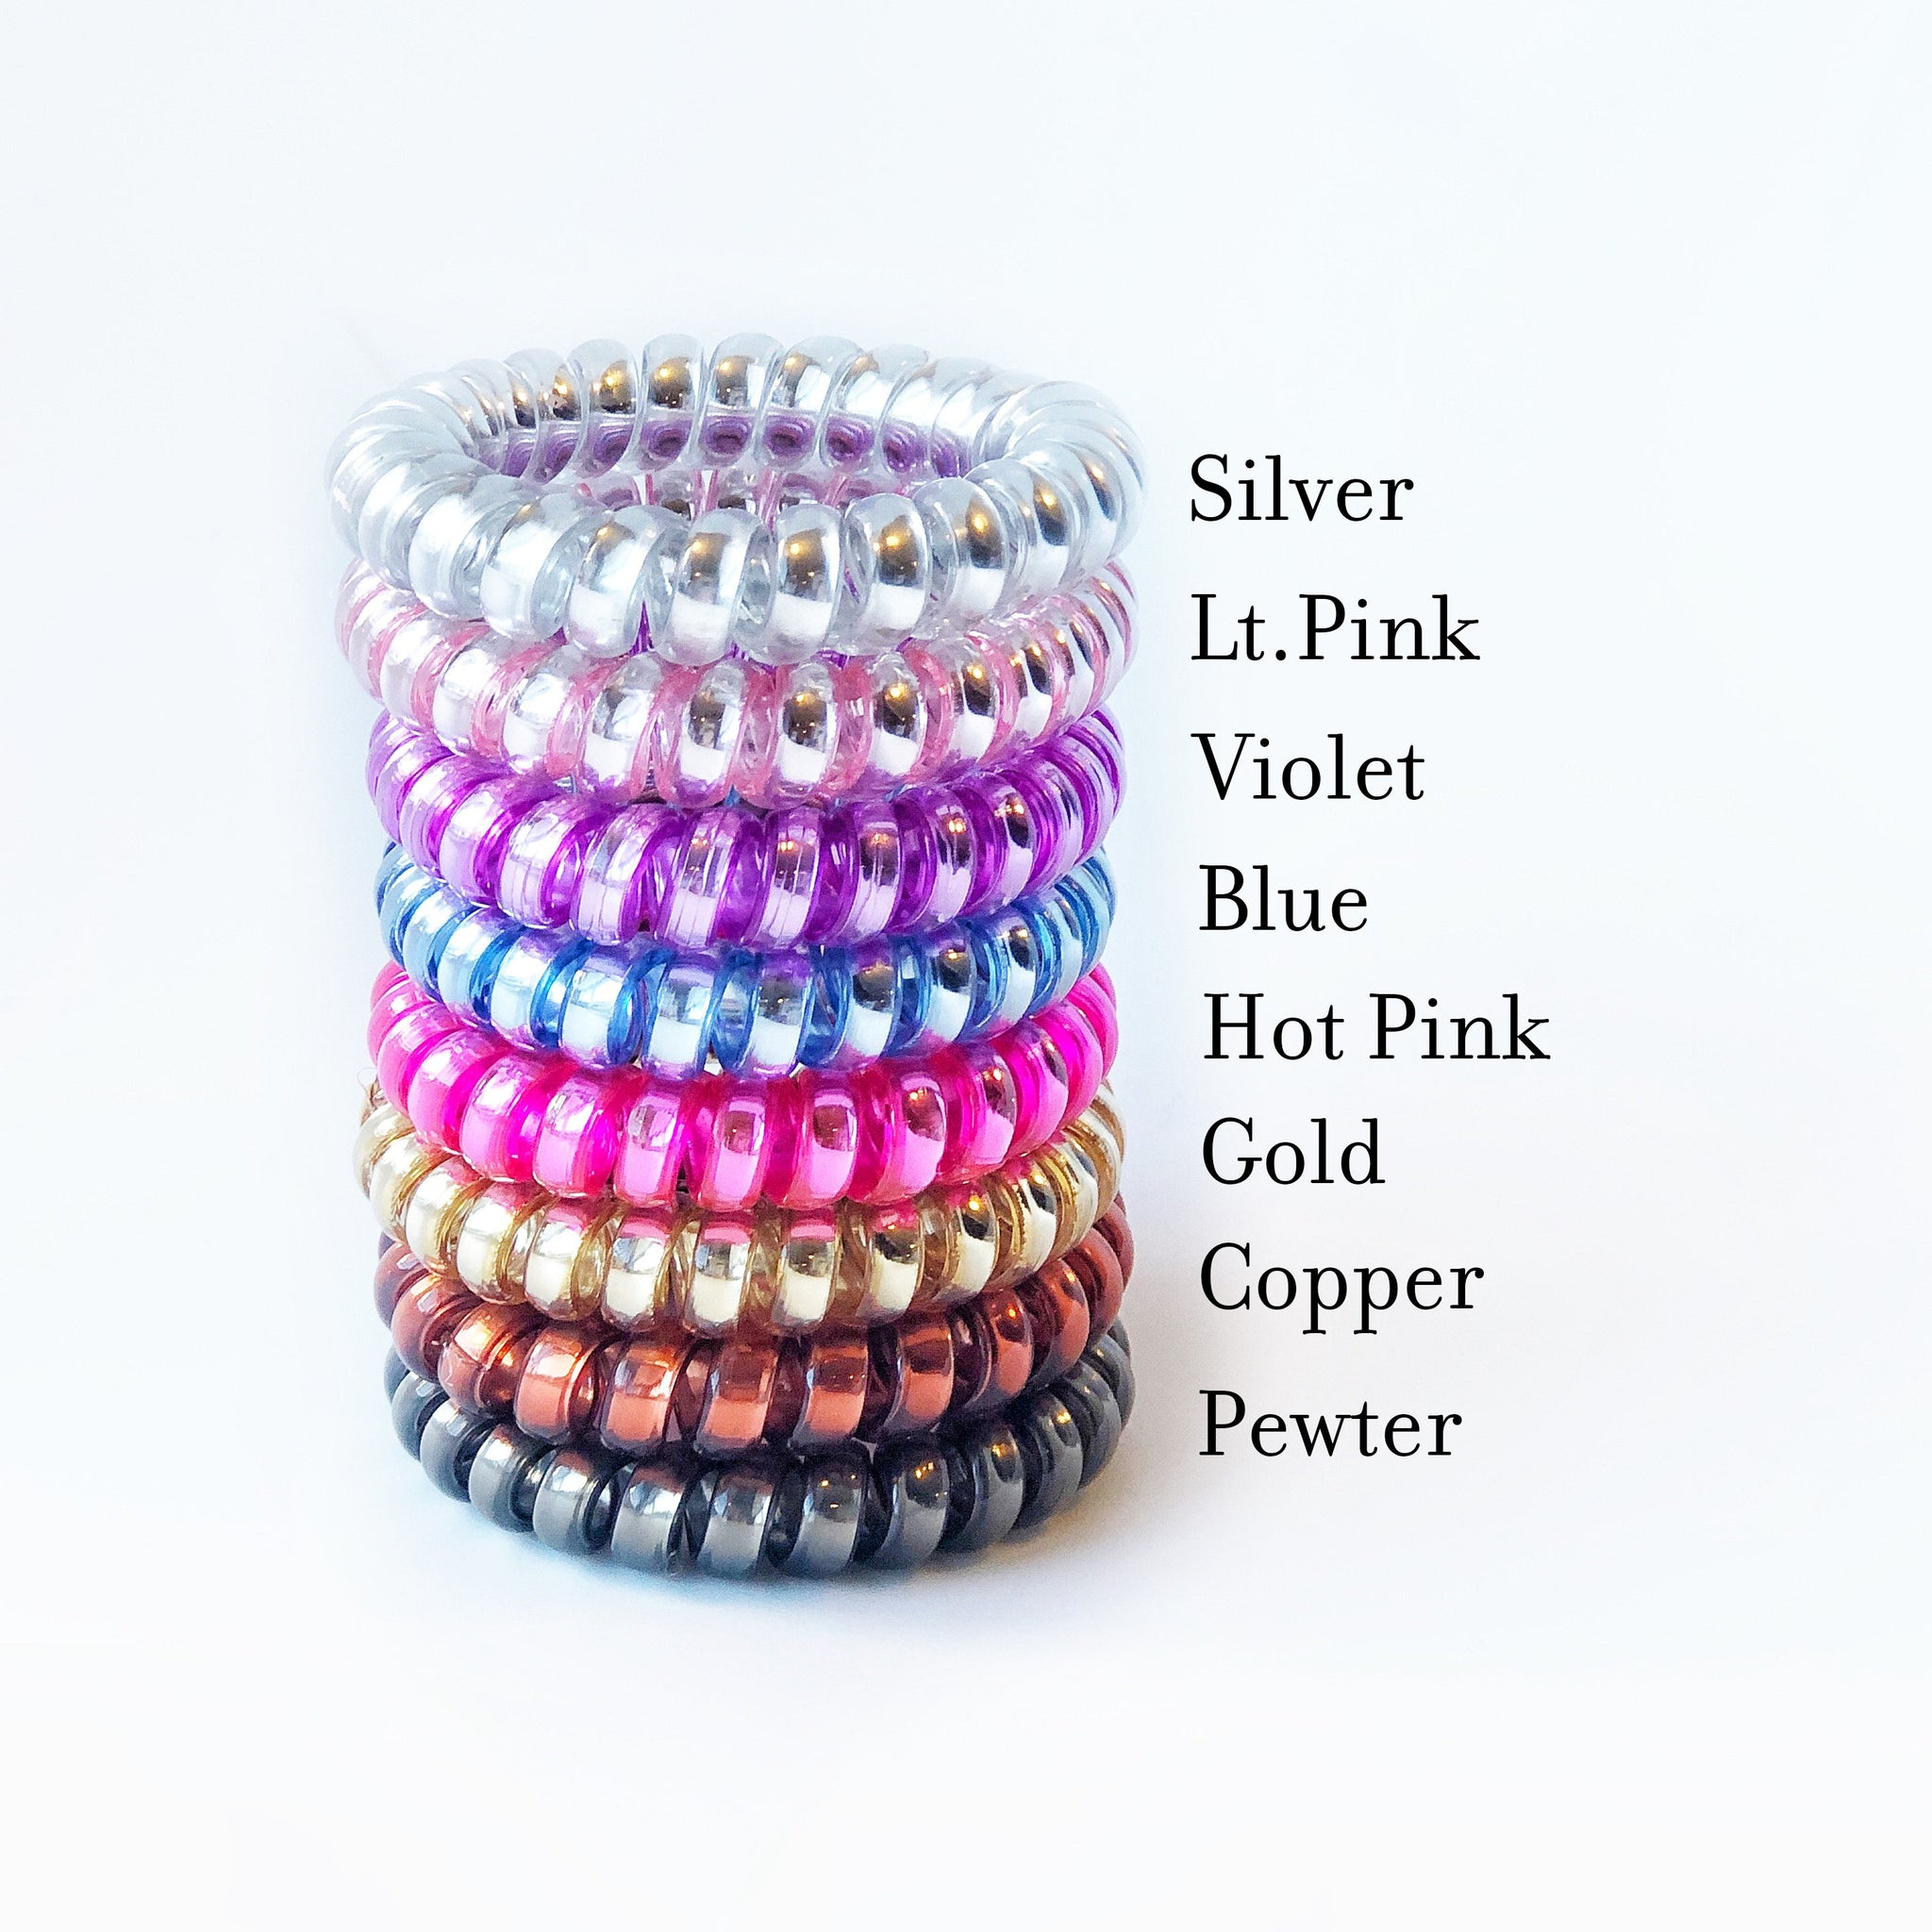 New Orleans Bachelorette Party Favors, NOLArette Spiral Hair Ties - @PlumPolkaDot